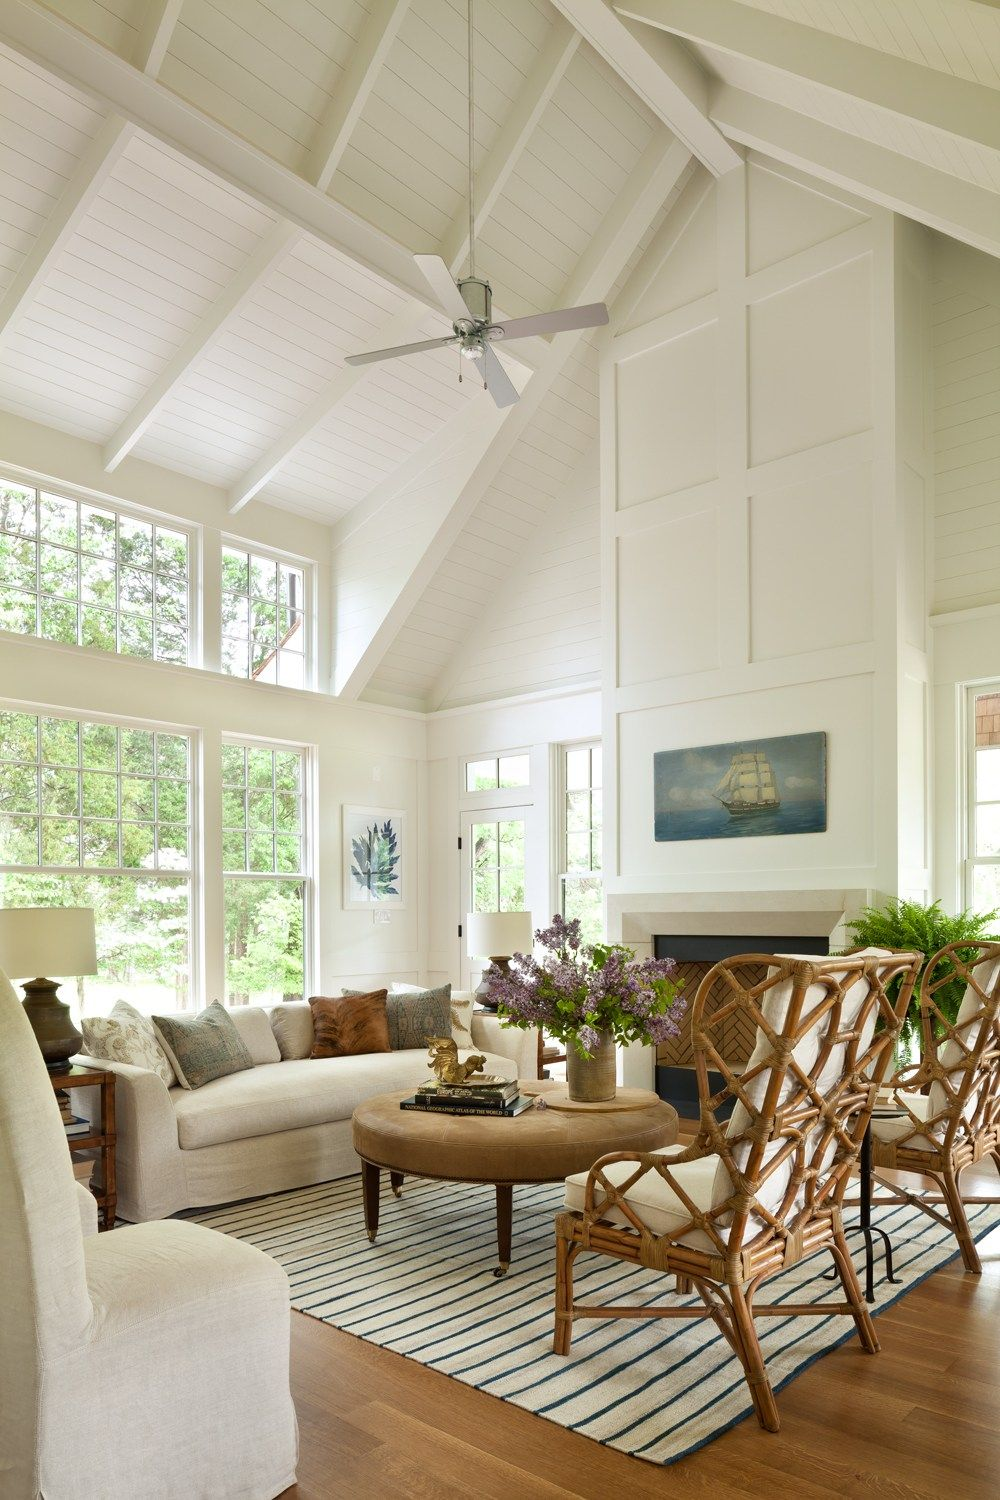 Inspired By: Lake House Style | Future house | Pinterest | Lakes ...